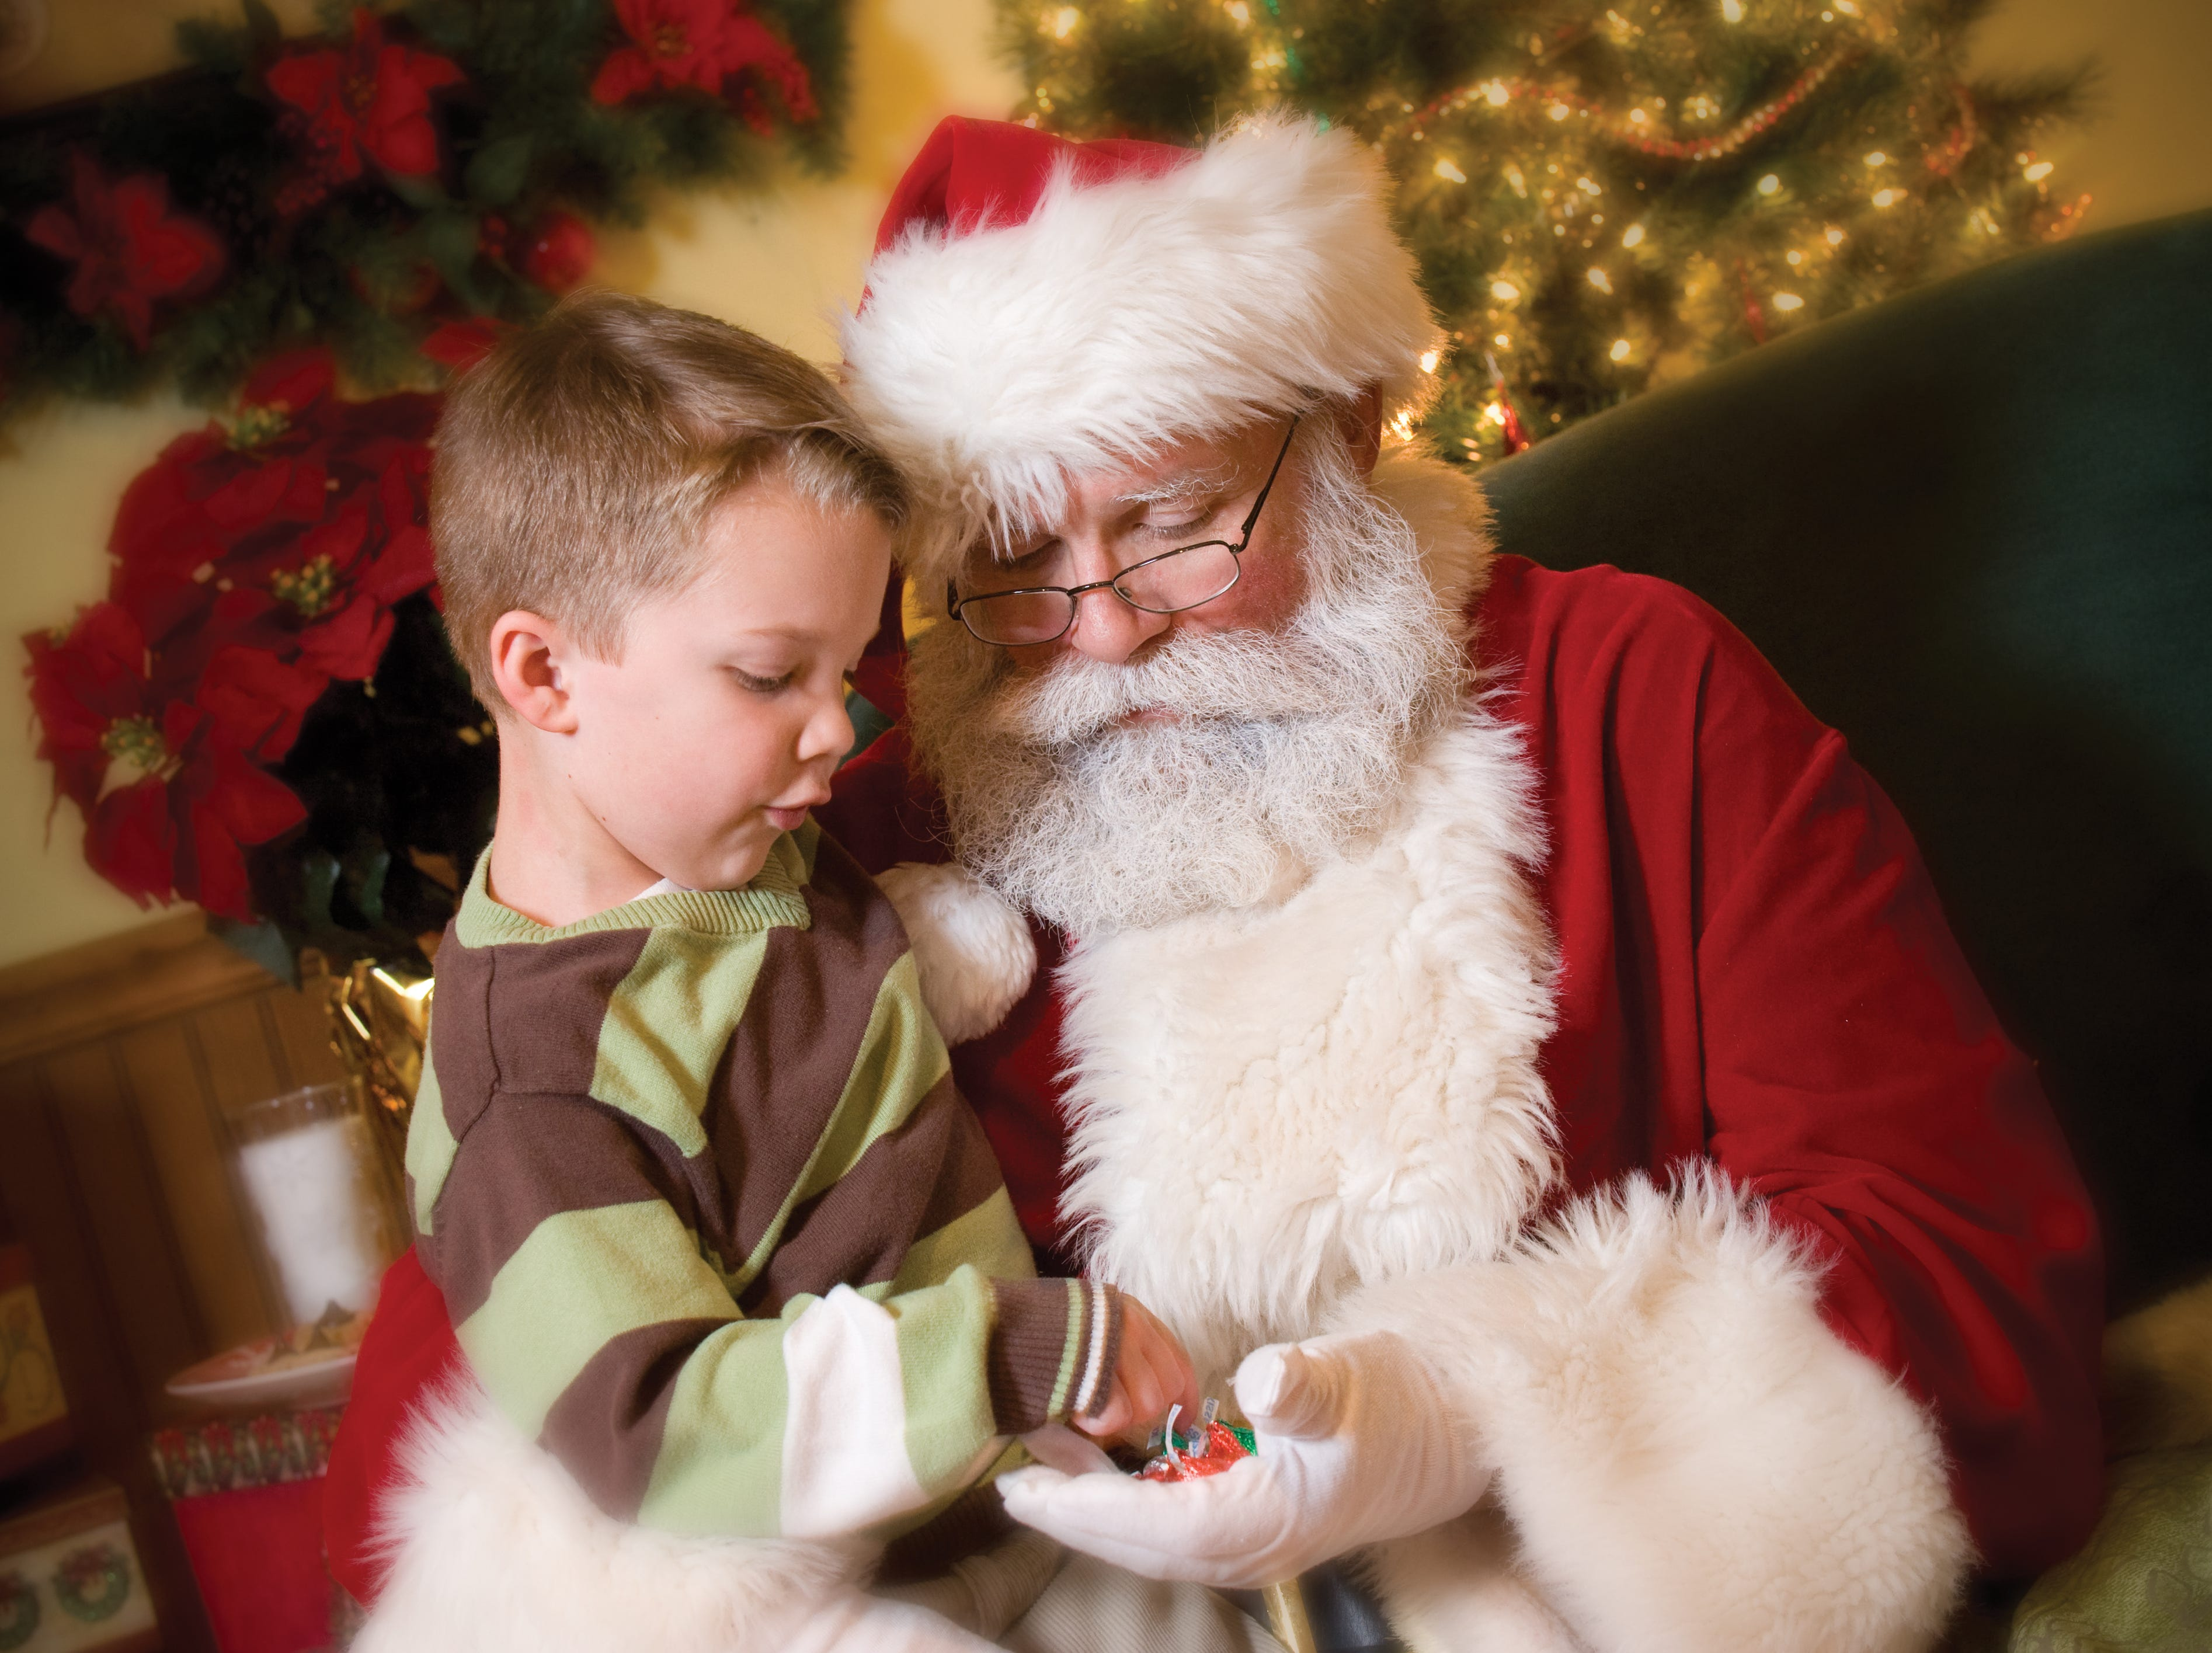 Kids can also have breakfast or lunch with Santa at Hersheypark Place.